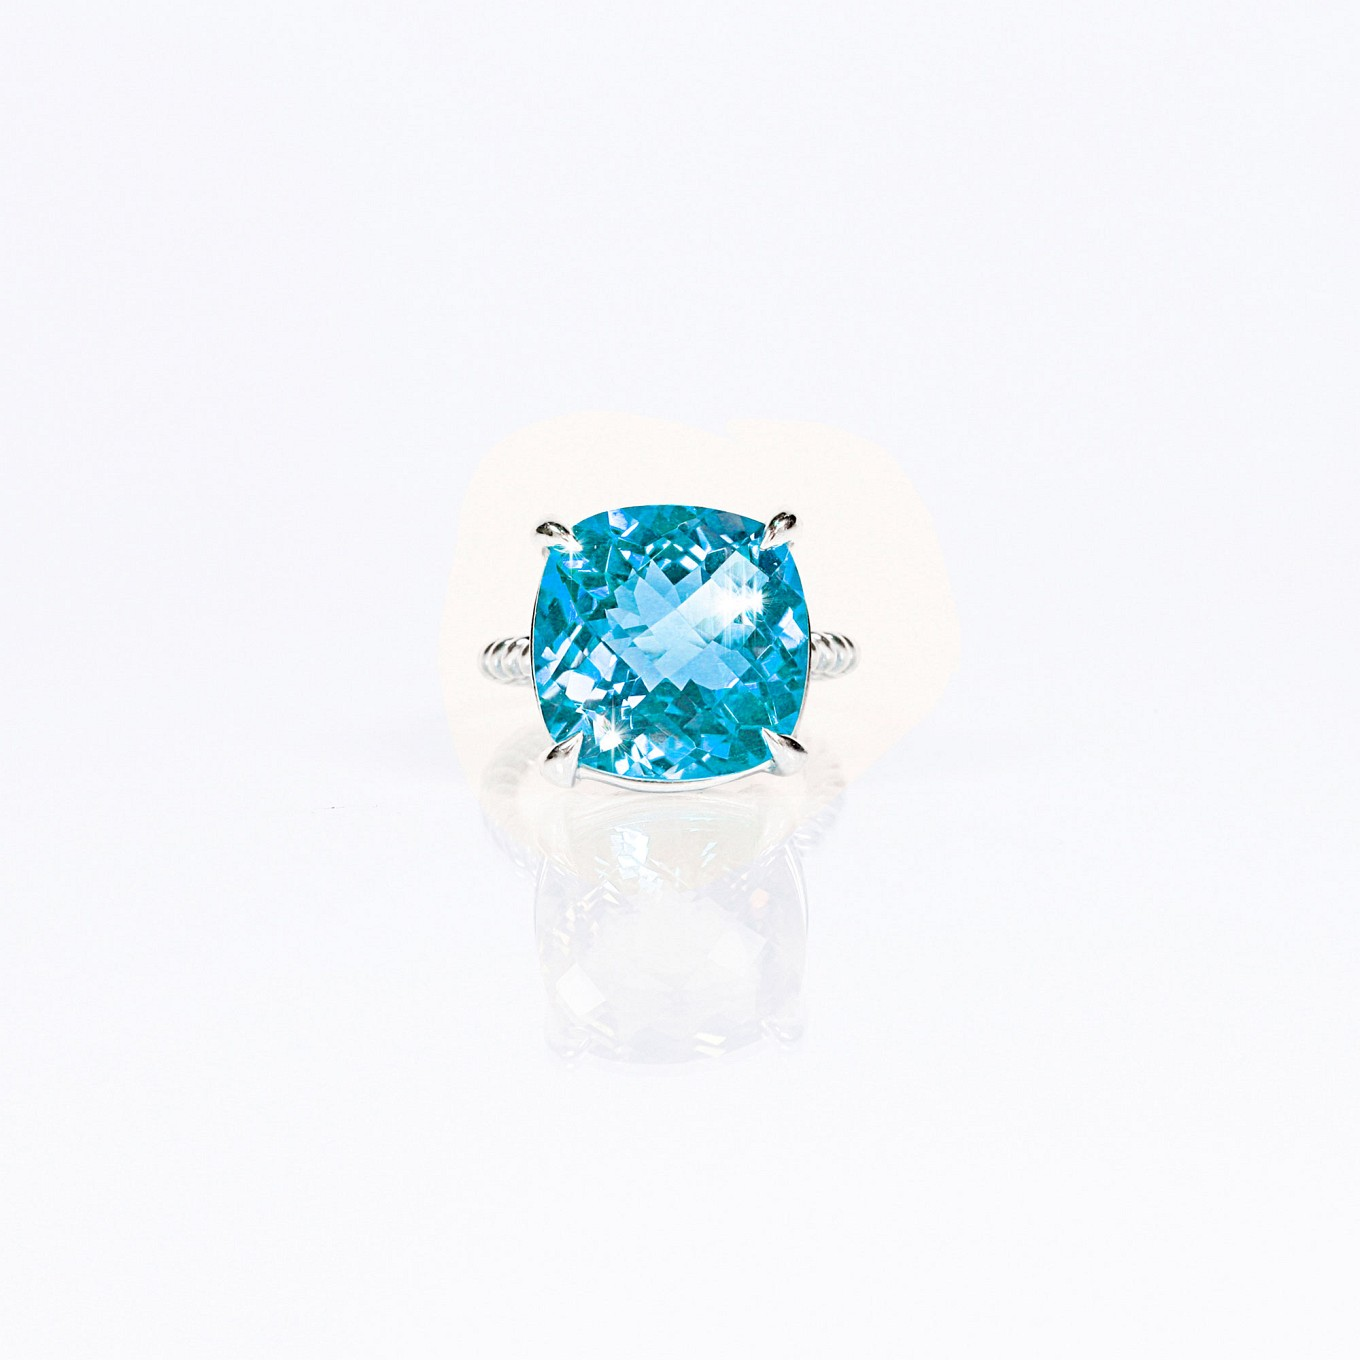 Blue topaz cushion cut braid ring in sterling silver